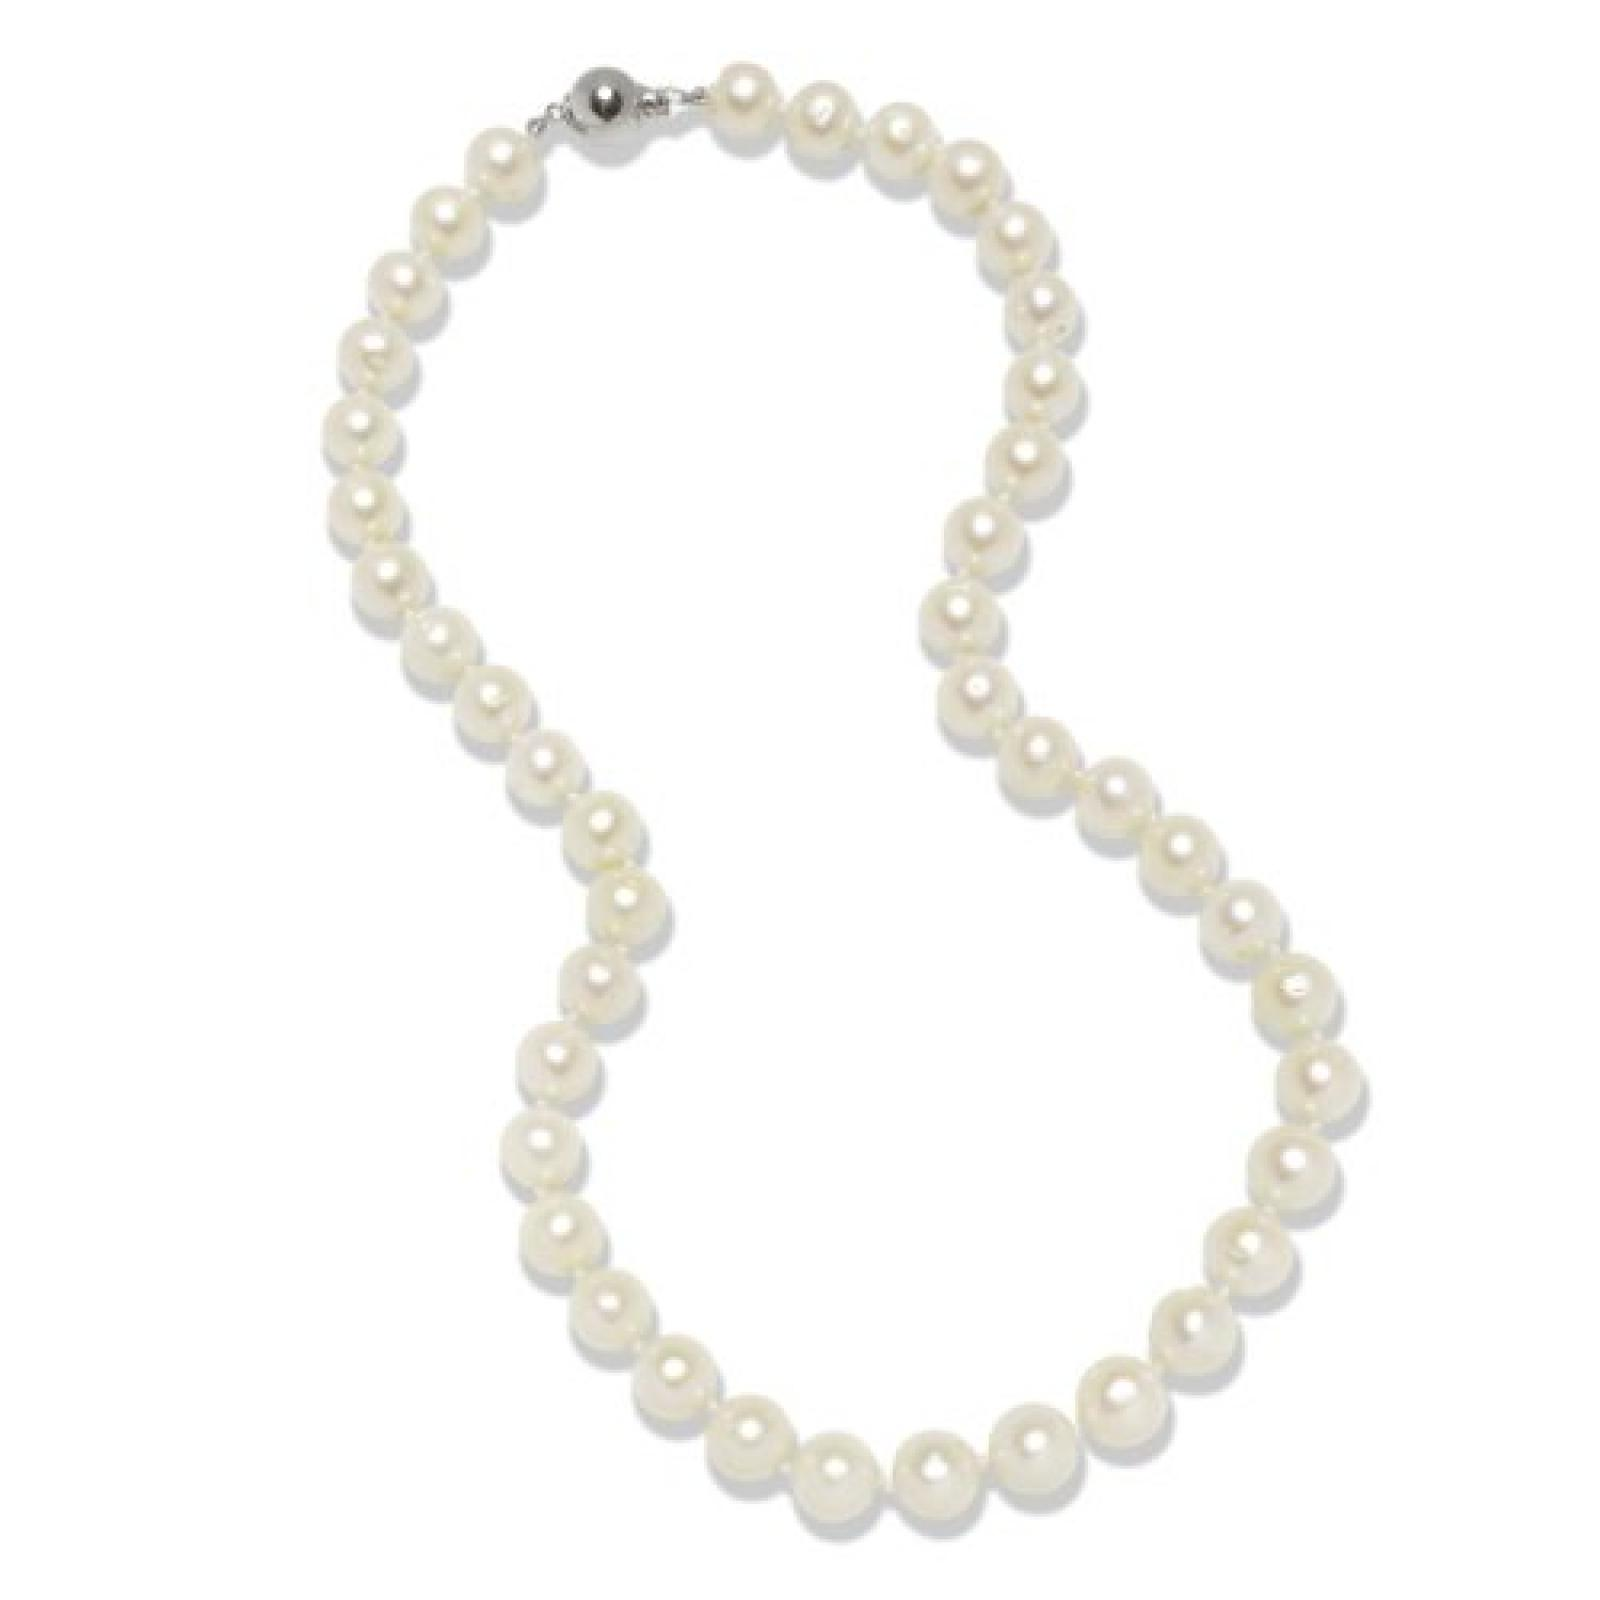 Valero Pearls Classic Collection Damen-Kette Hochwertige Süßwasser-Zuchtperlen in ca.  10 mm Rund weiß 925 Sterling Silber    50 cm + 5 cm Verlängerung   60201643